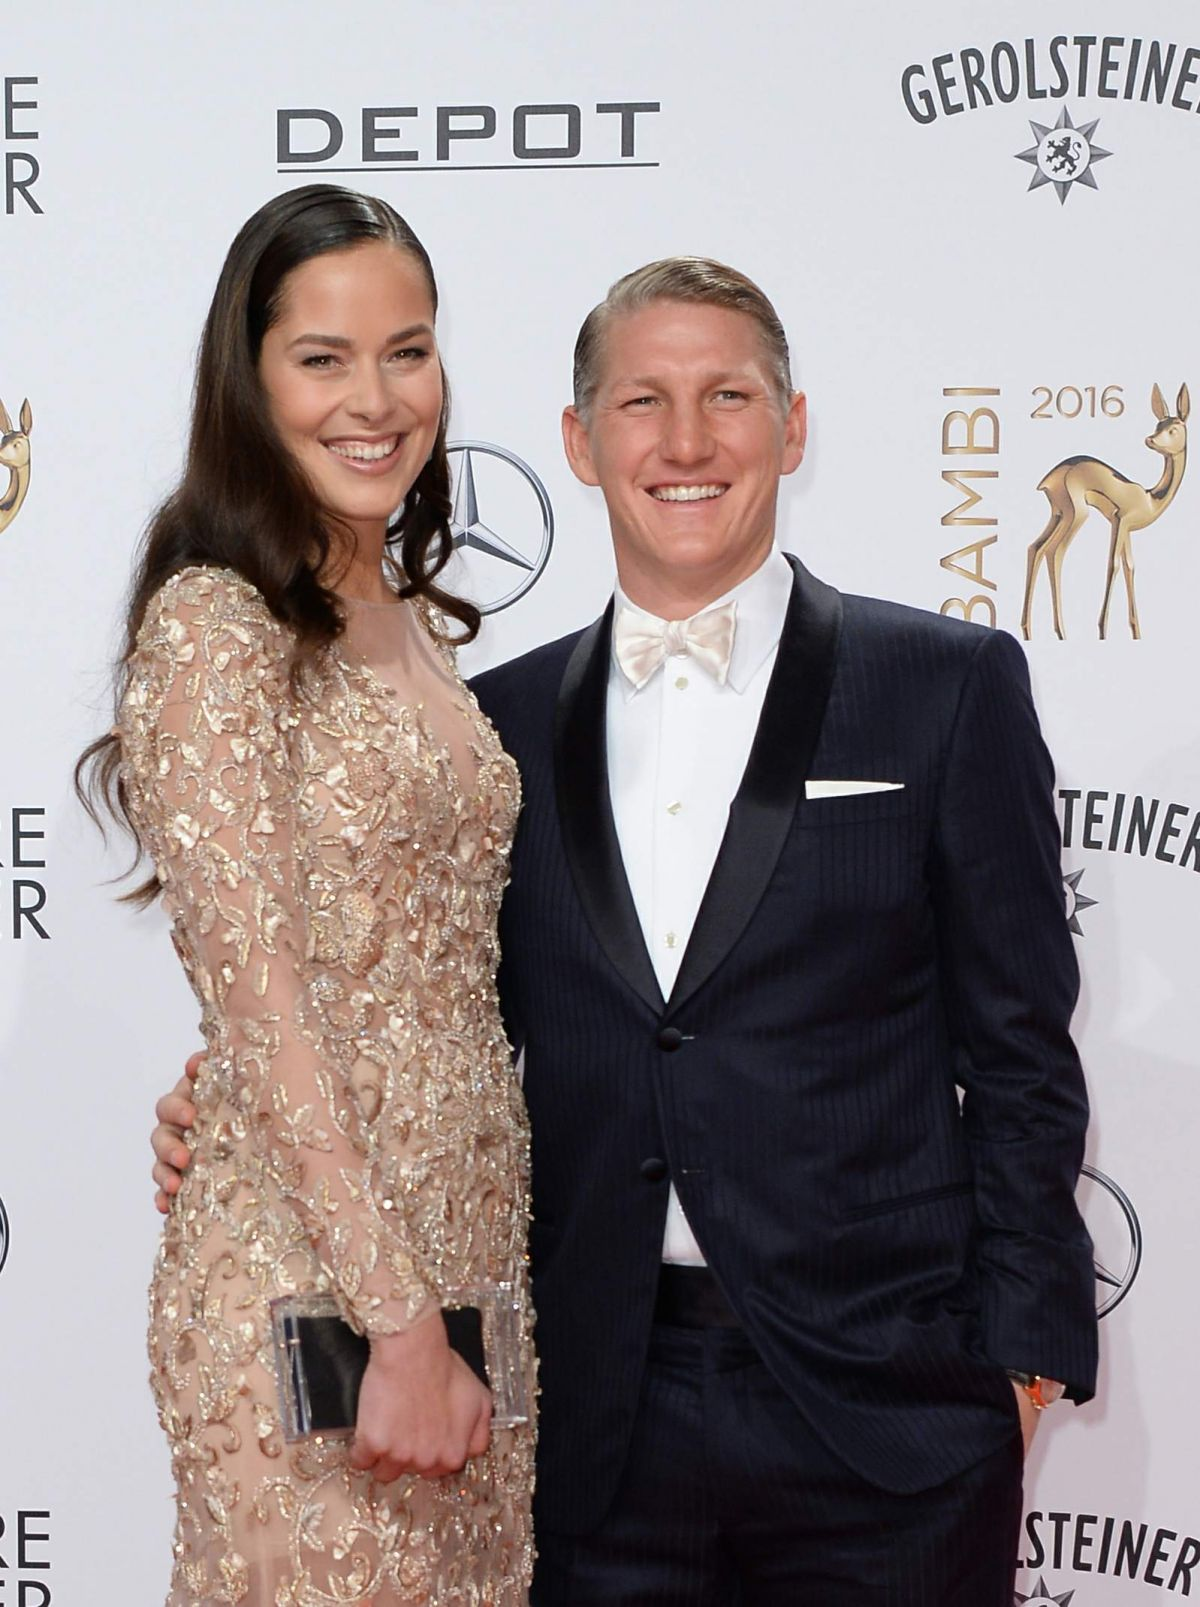 ANA IVANOVIC and Bastian Schweinsteiger at 68th Bambi Media Awards in Berlin 11/17/2016